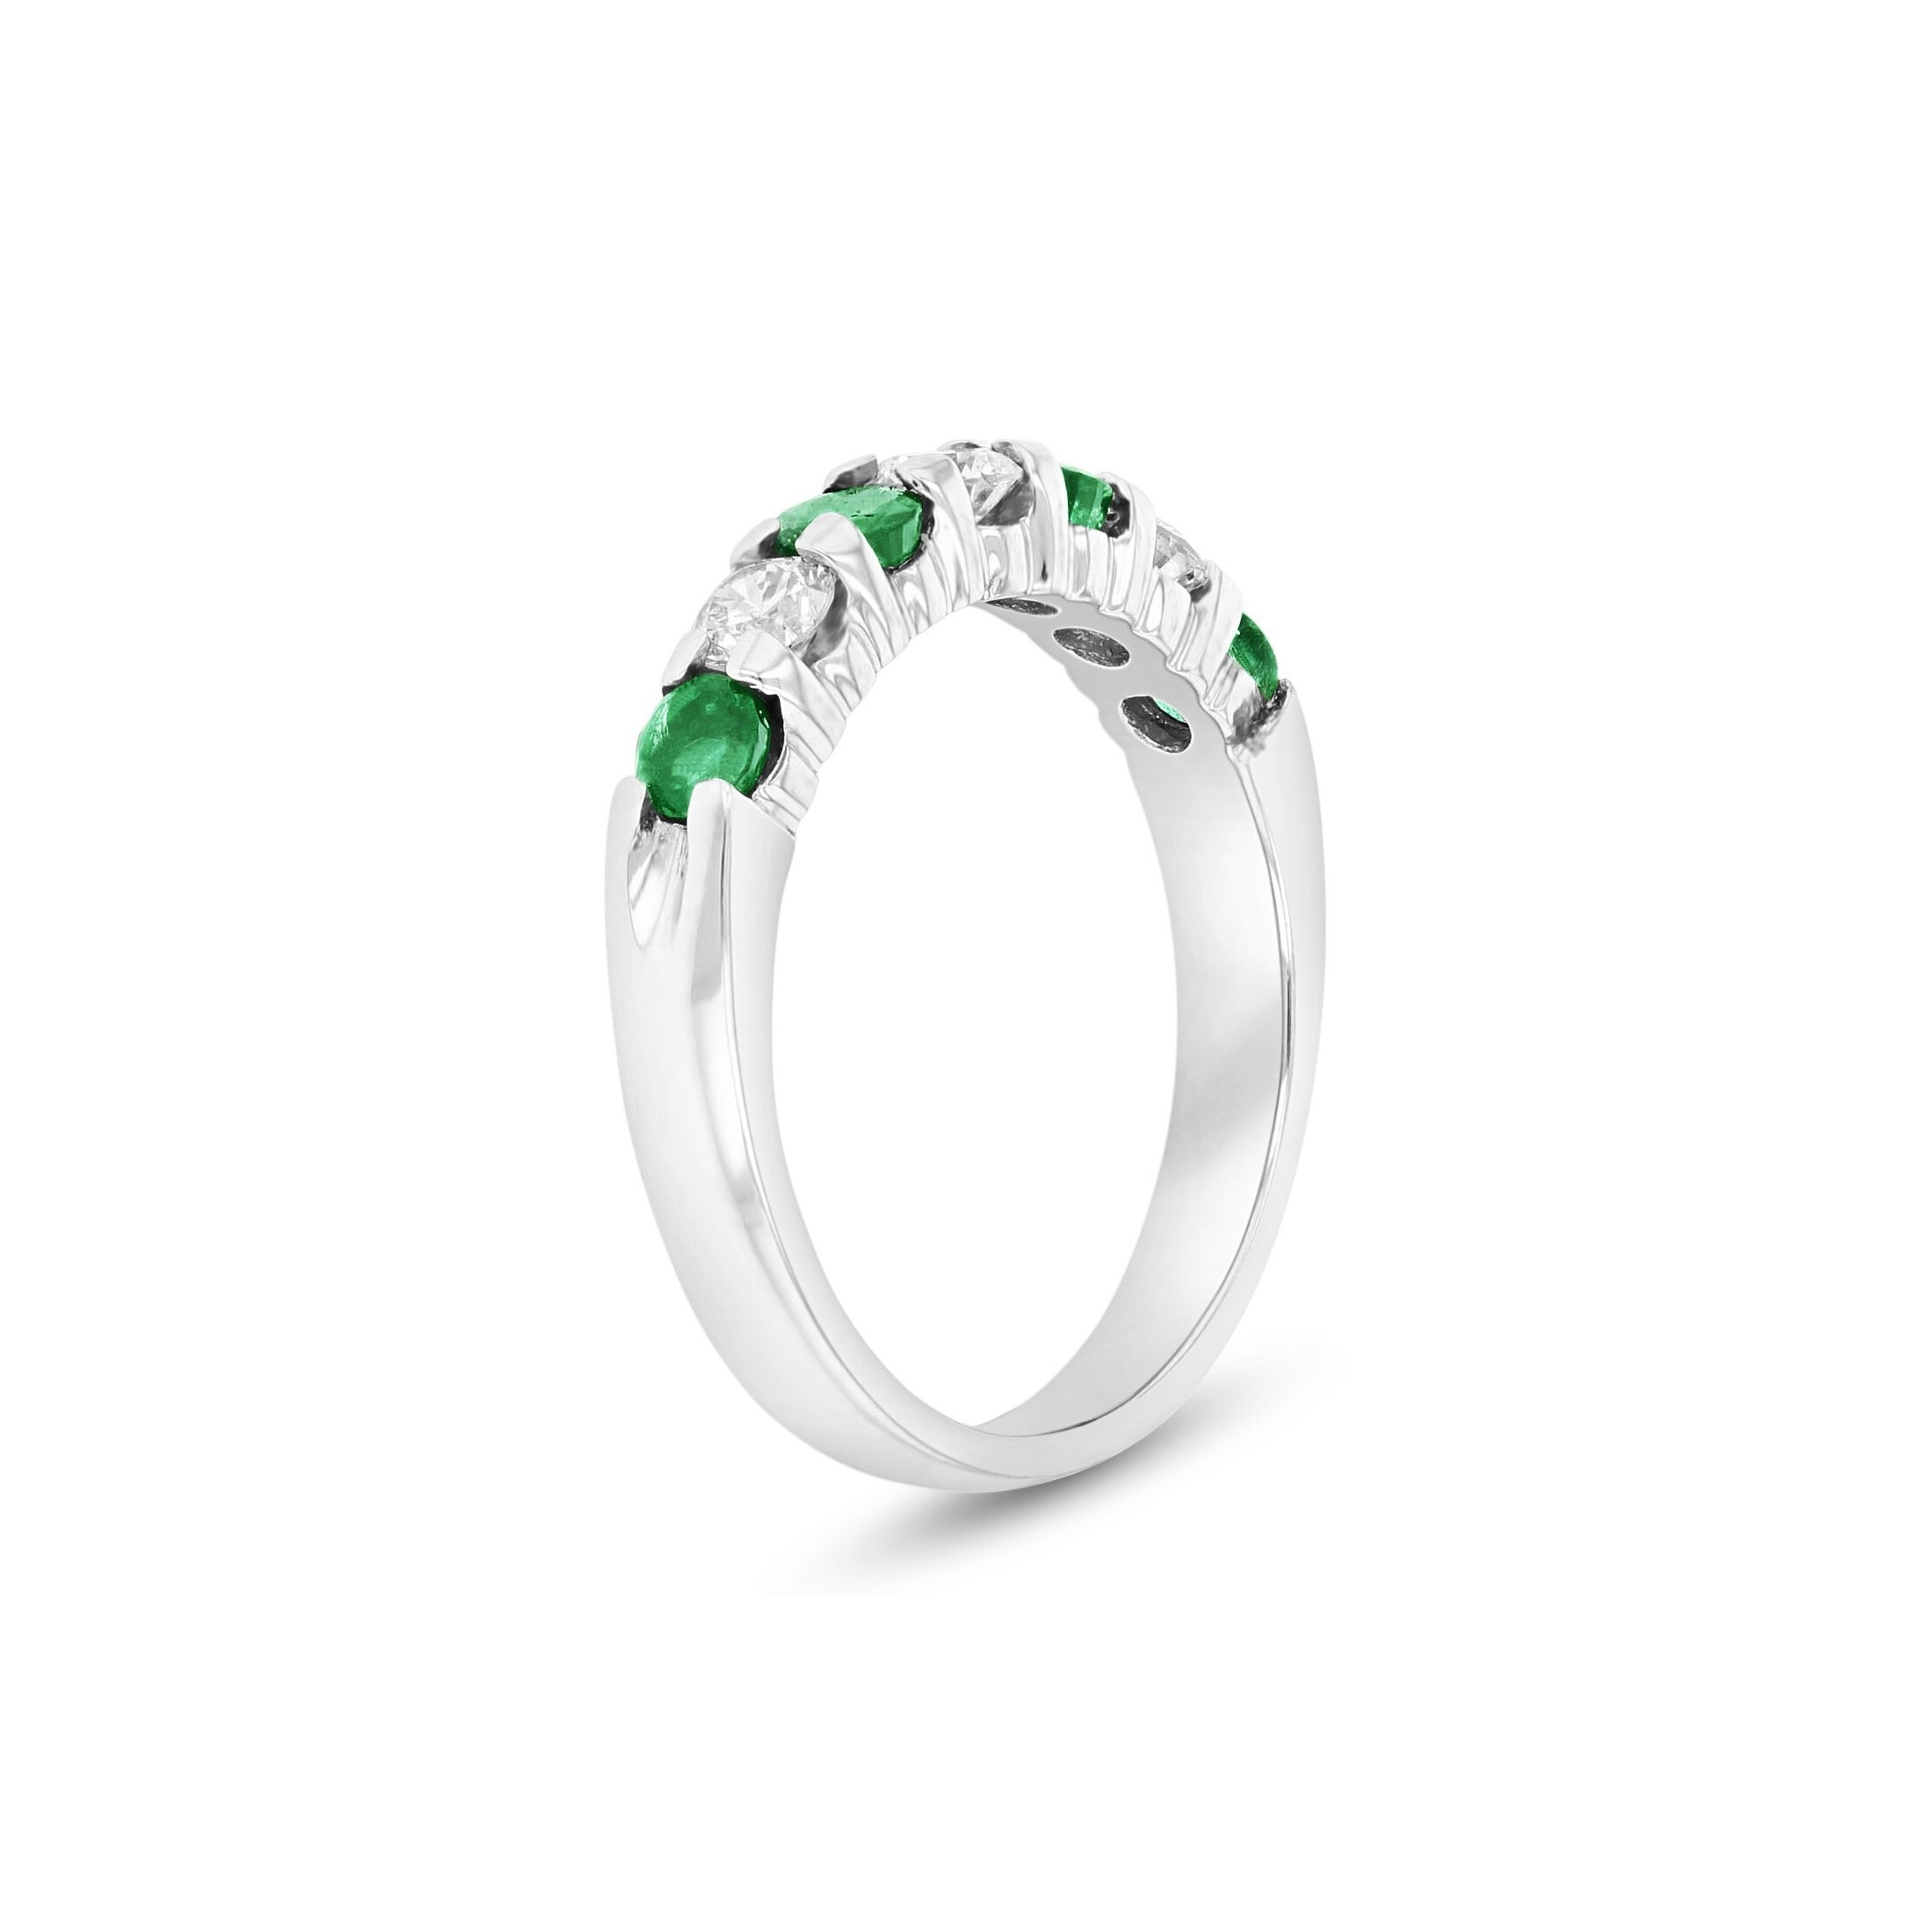 Seven Stone Emerald And Diamond Ring, 14K White Gold For 2017 Emerald And Diamond Seven Stone Wedding Bands In 14K Gold (View 14 of 15)